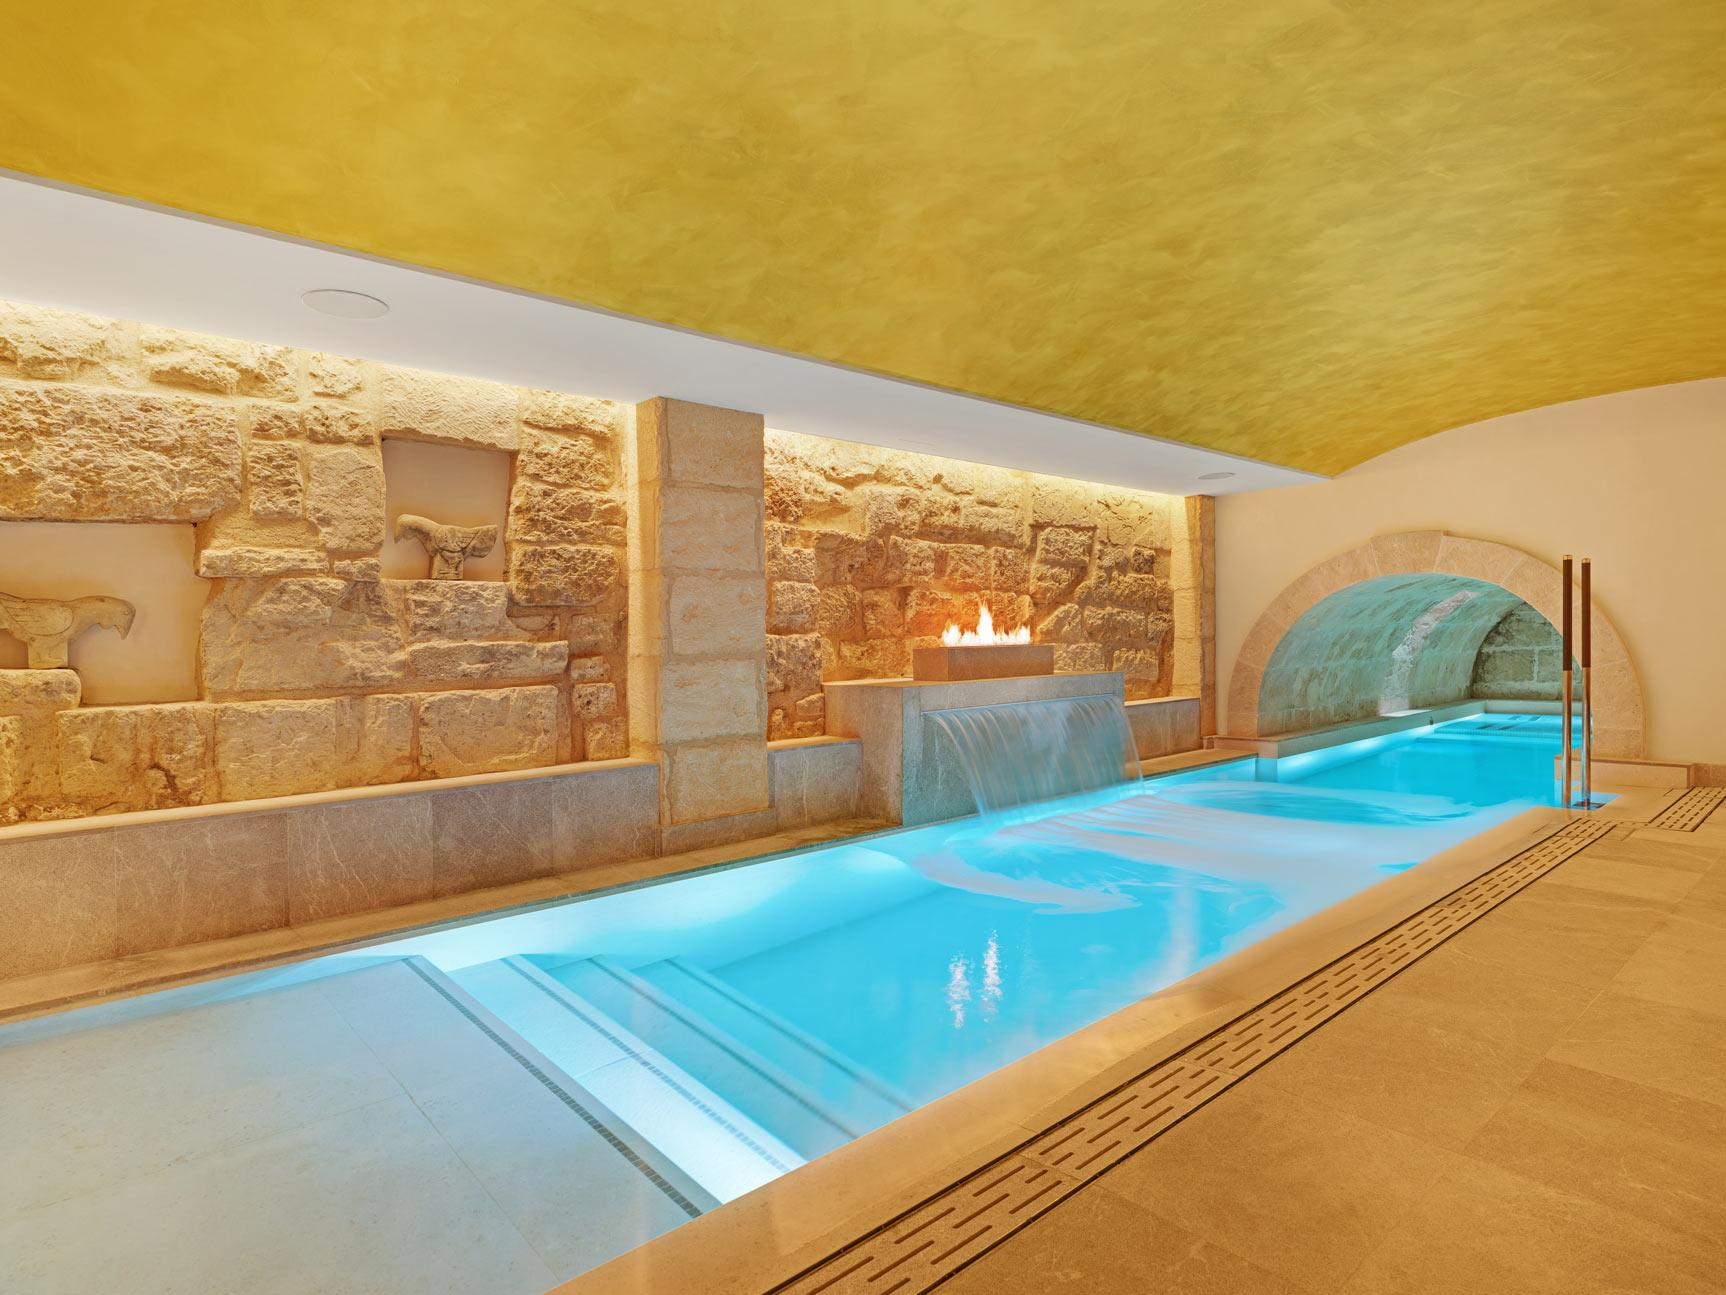 Spa pool with vaulted ceiling